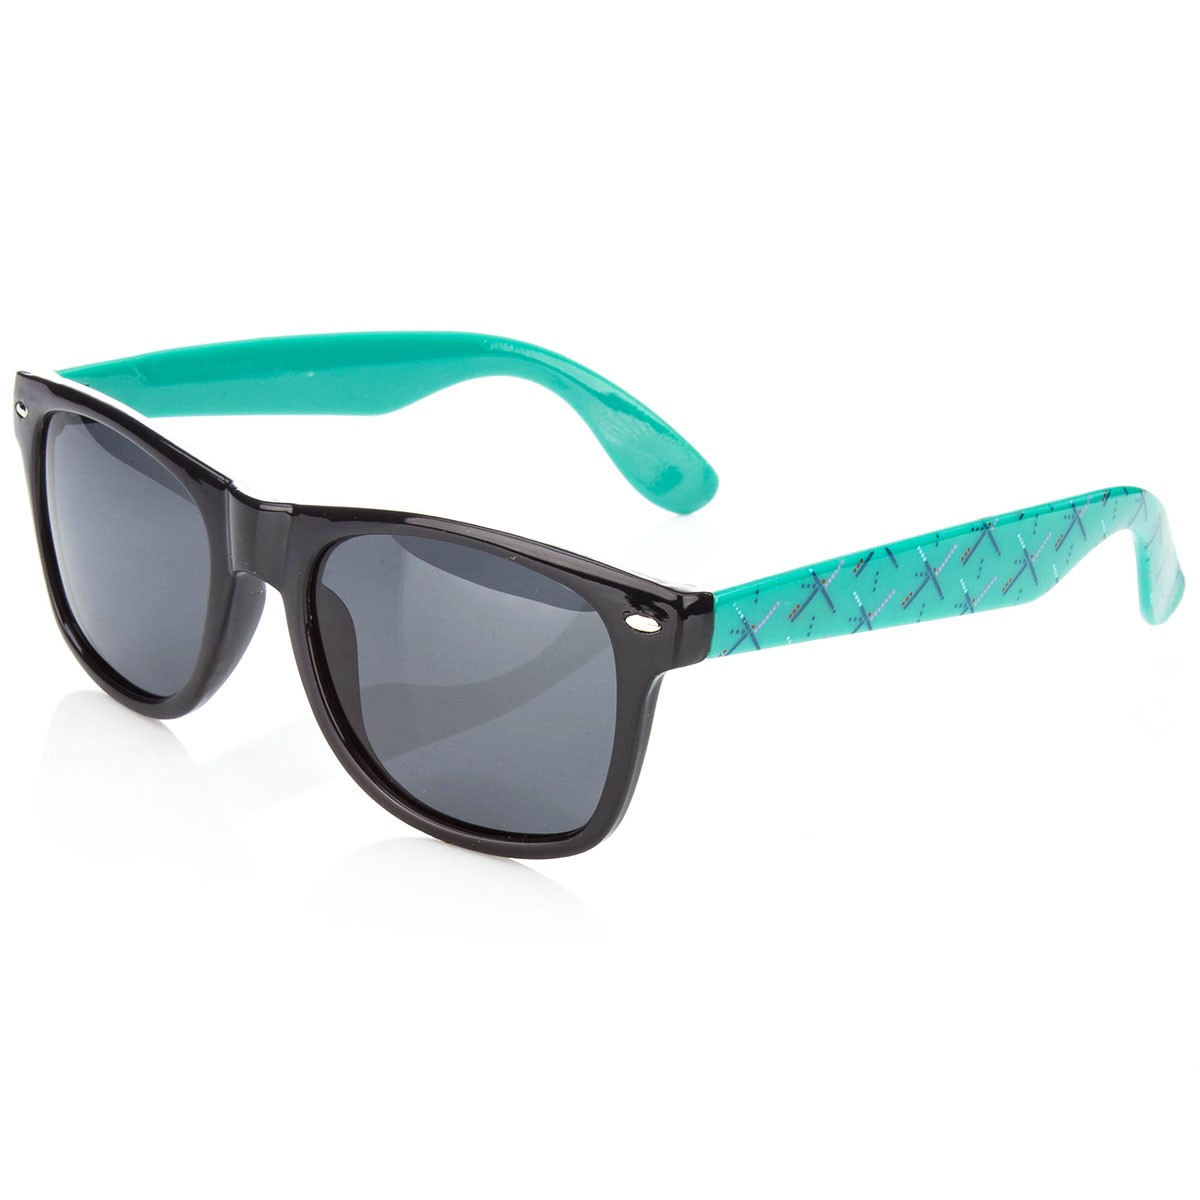 Townie Portland Sunglasses - PDX Carpet